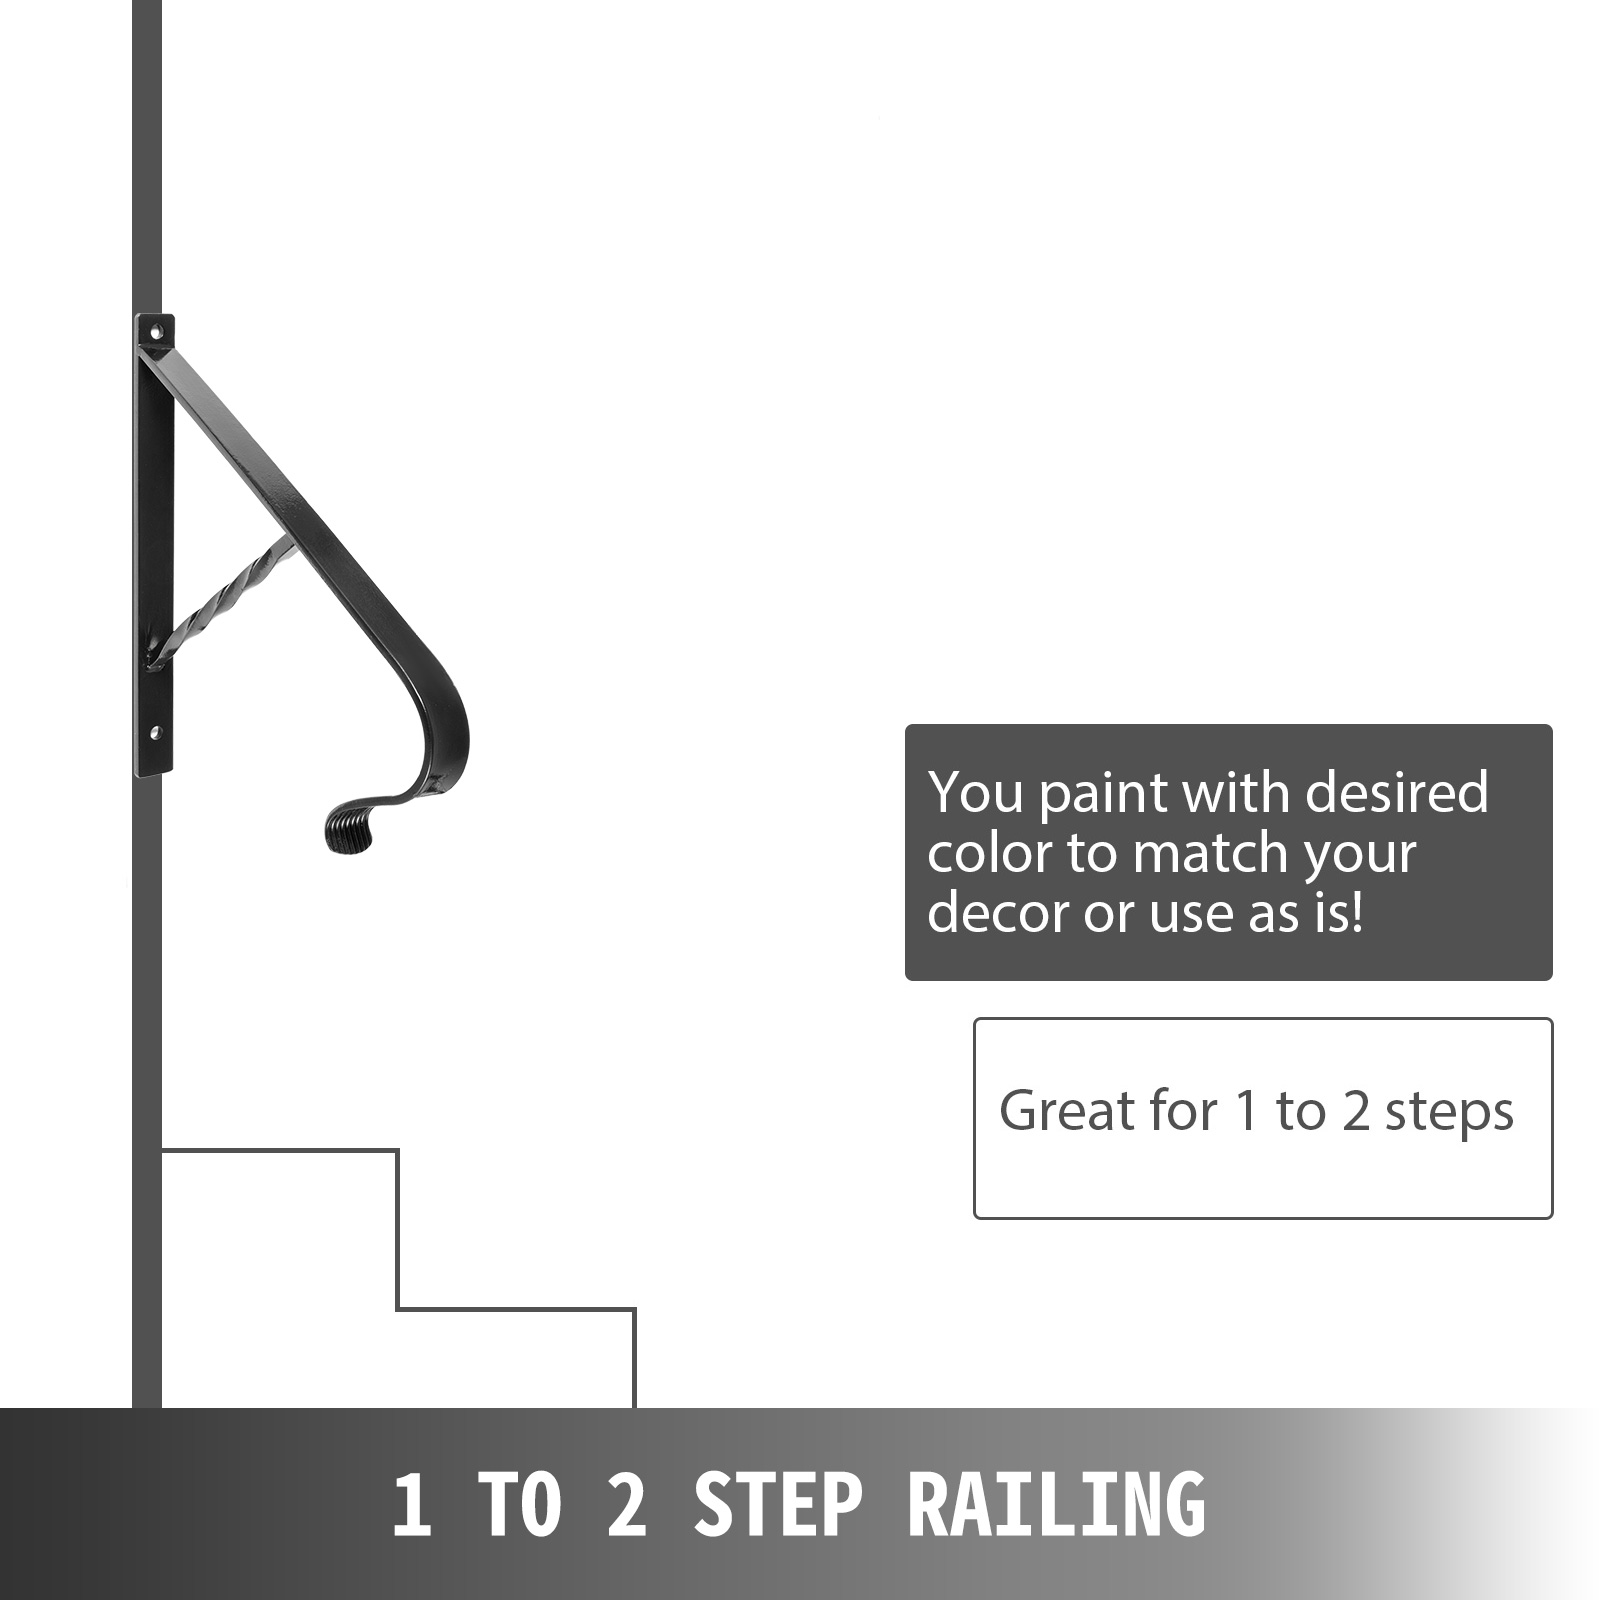 Handrails-for-Outdoor-Step-Wrought-Iron-Handrail-20-034-Length-Porch-Deck-Railing thumbnail 111